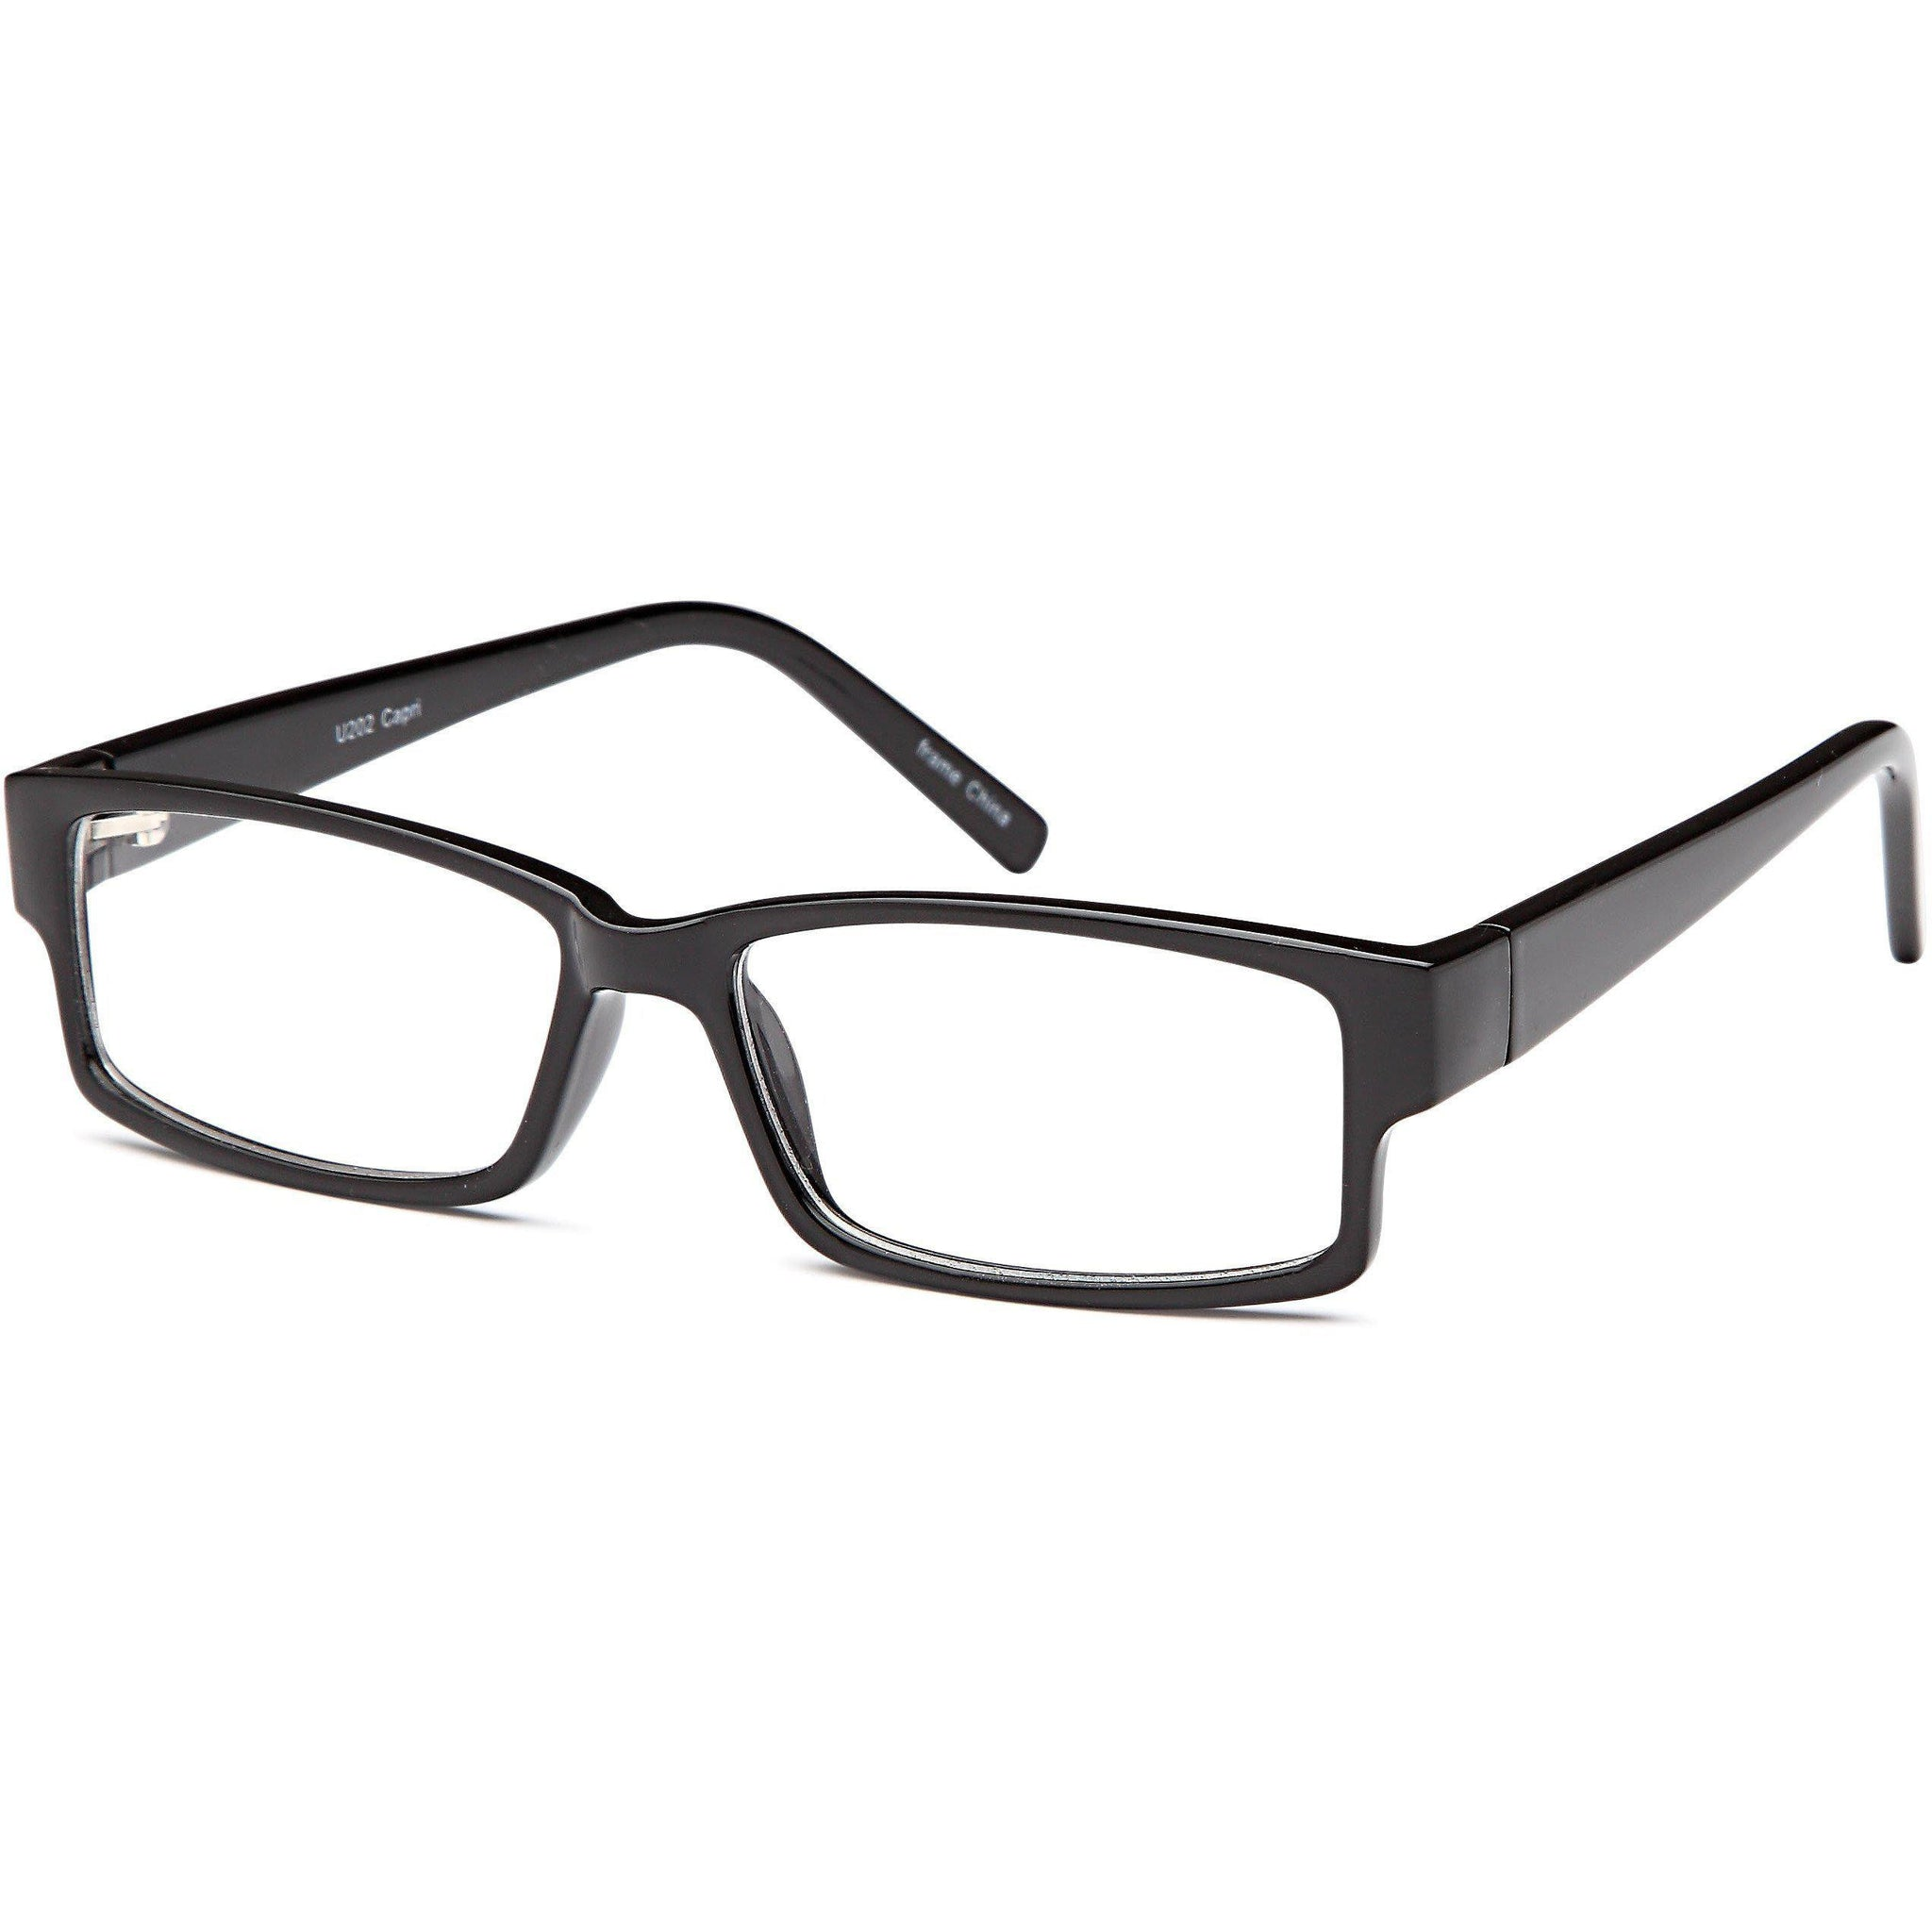 4U Prescription Glasses U 202 Optical Eyeglasses Frame - timetoshade